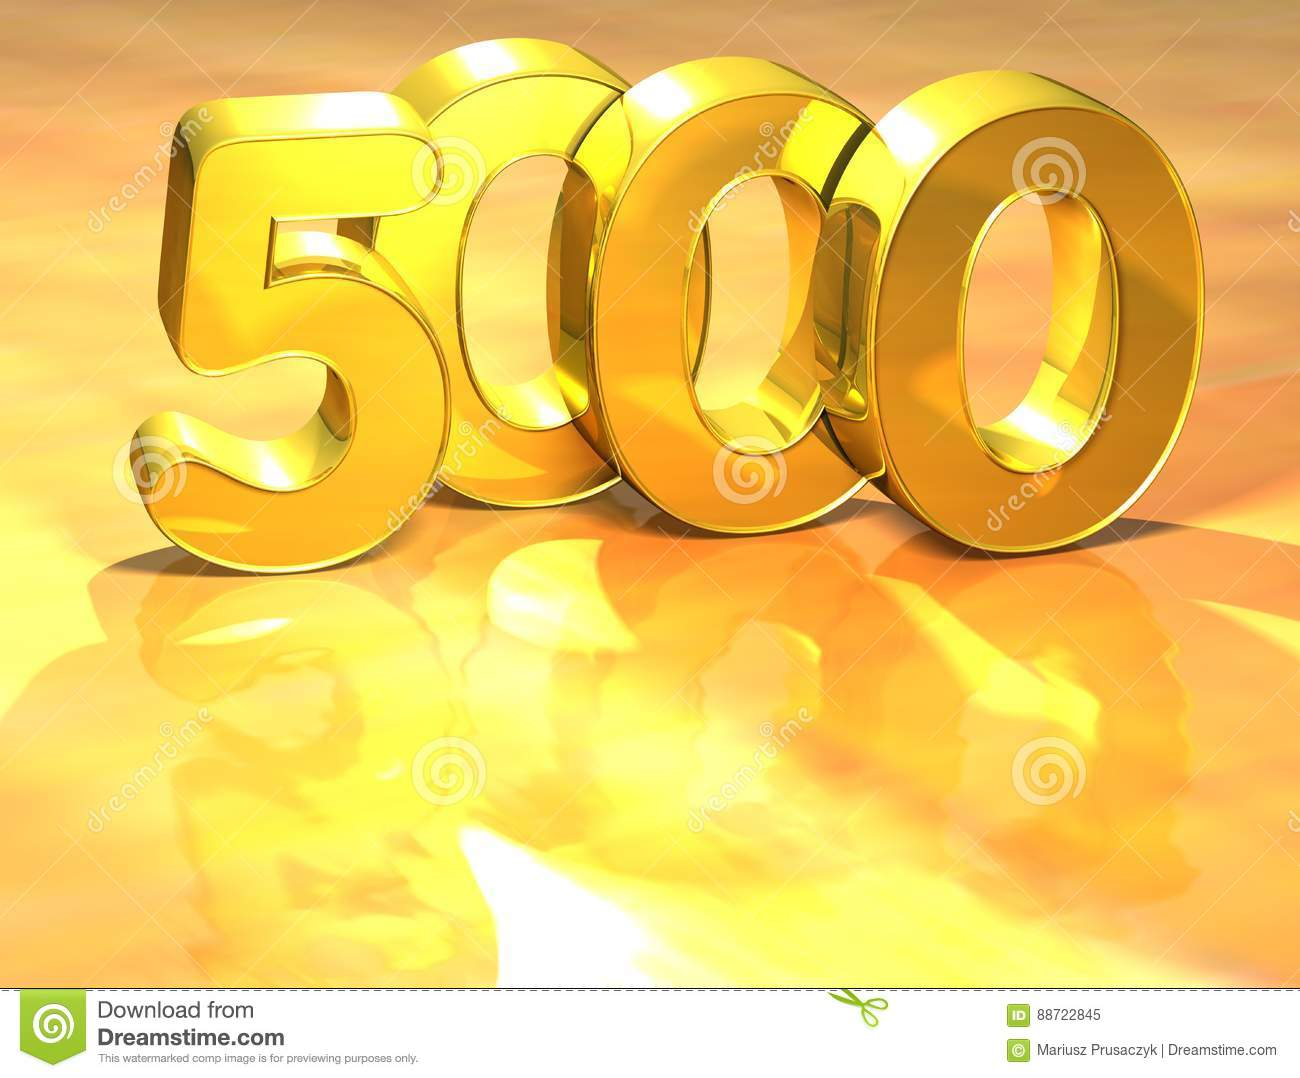 3d Gold Ranking Number 5000 On White Background  Stock